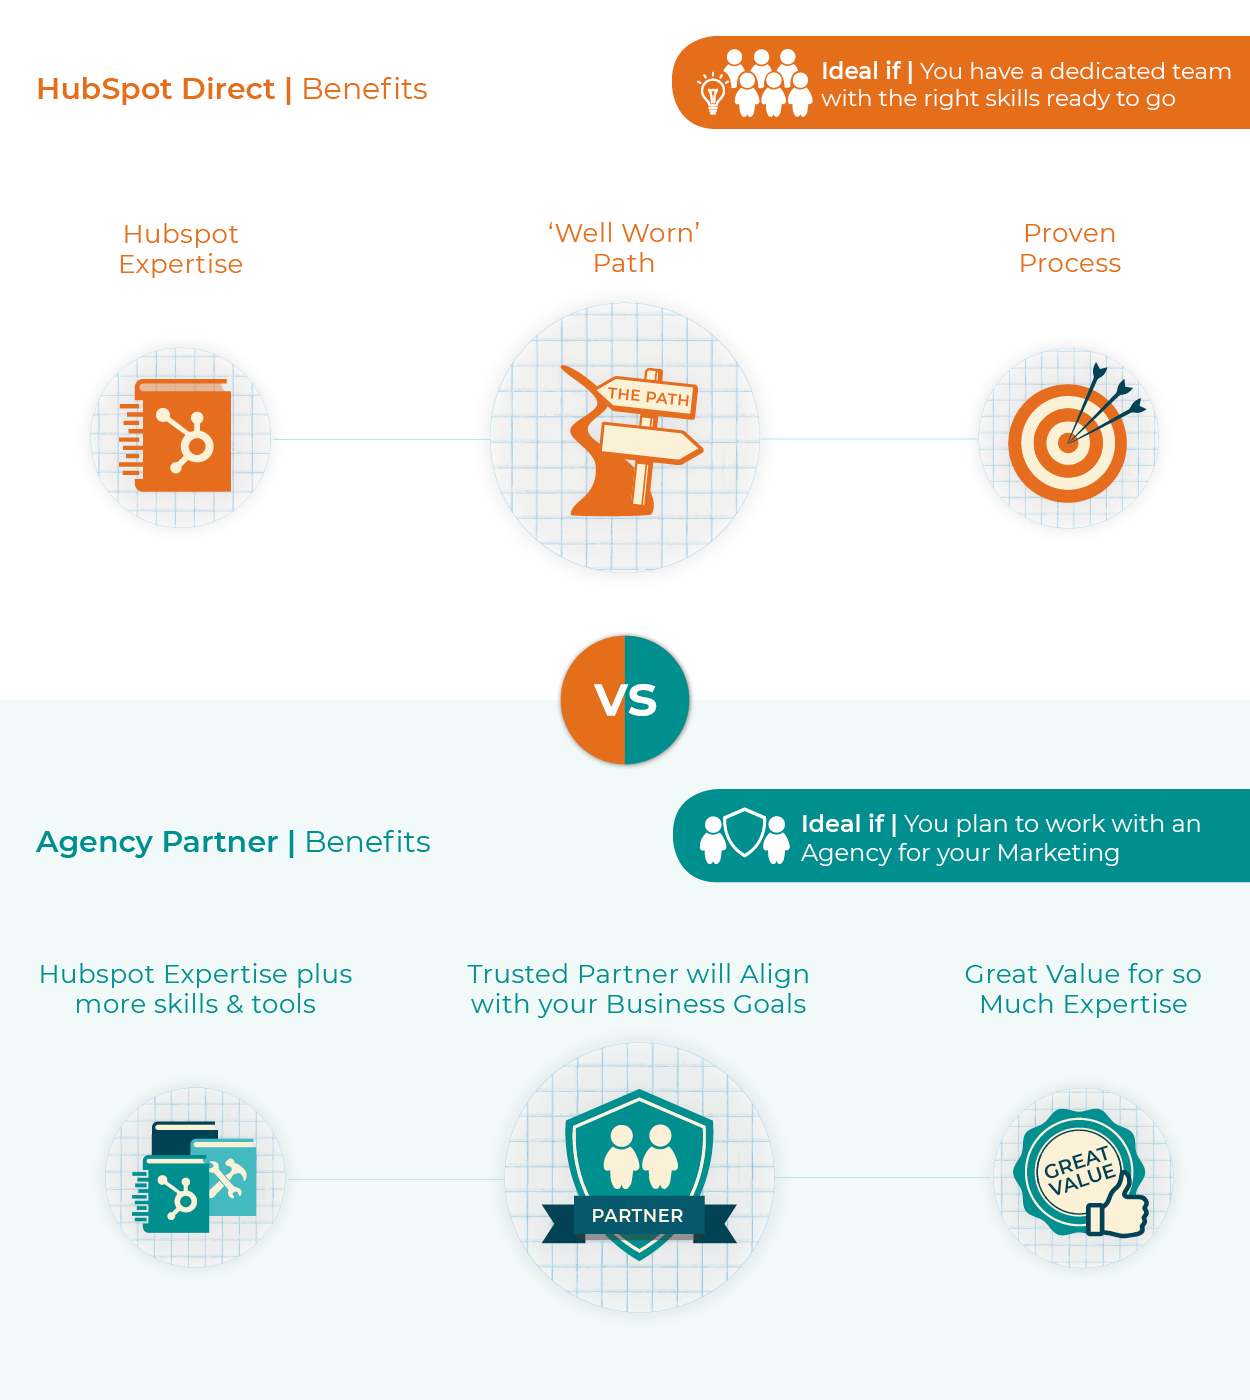 Hubspot Onboarding | Hubspot Direct or Agency Partner? | Benefits